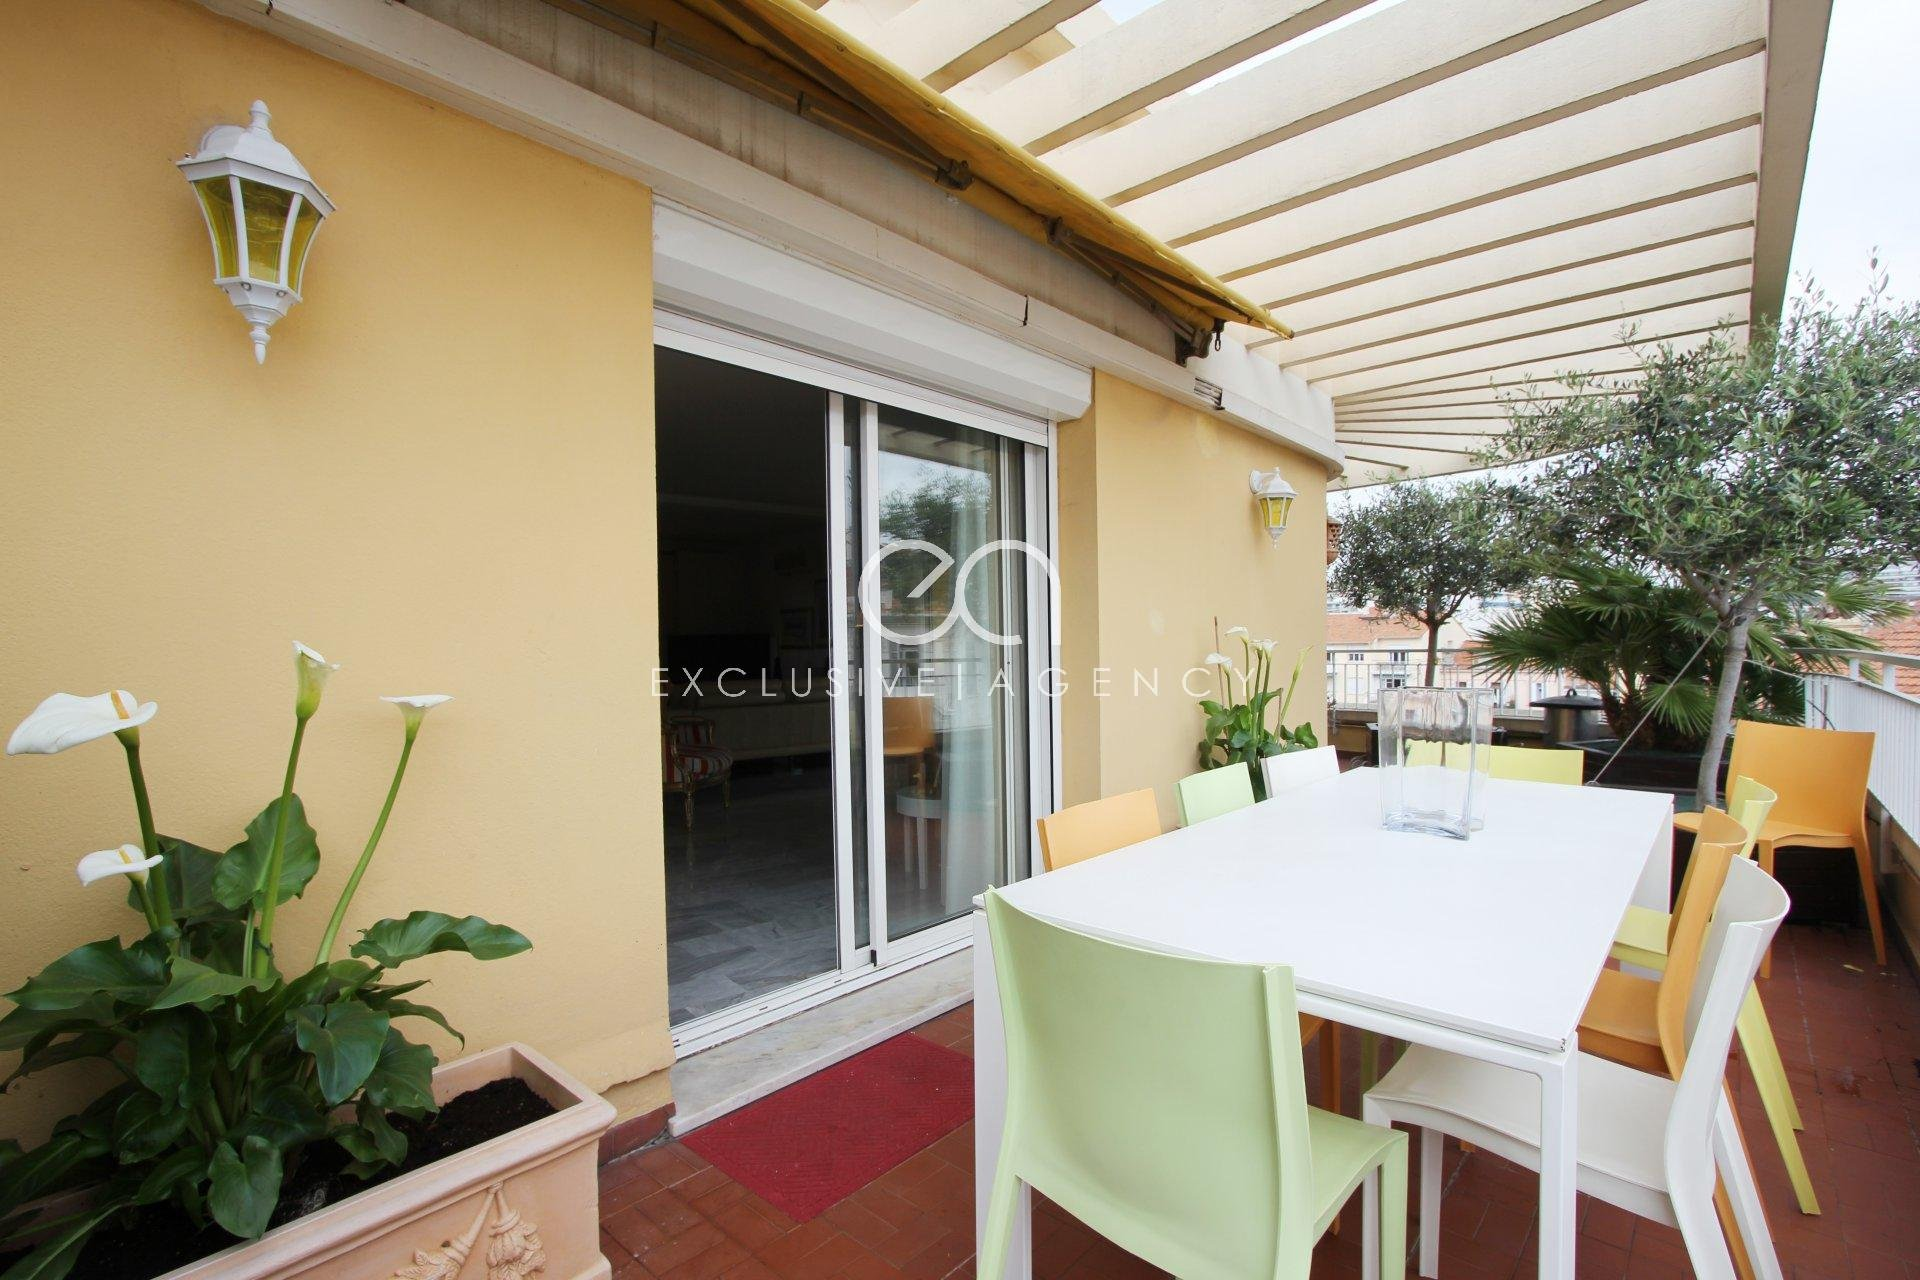 For sale 1 bedroom apartment of 70sqm Cannes City Center with a terrace of 120sqm, parking and cellar